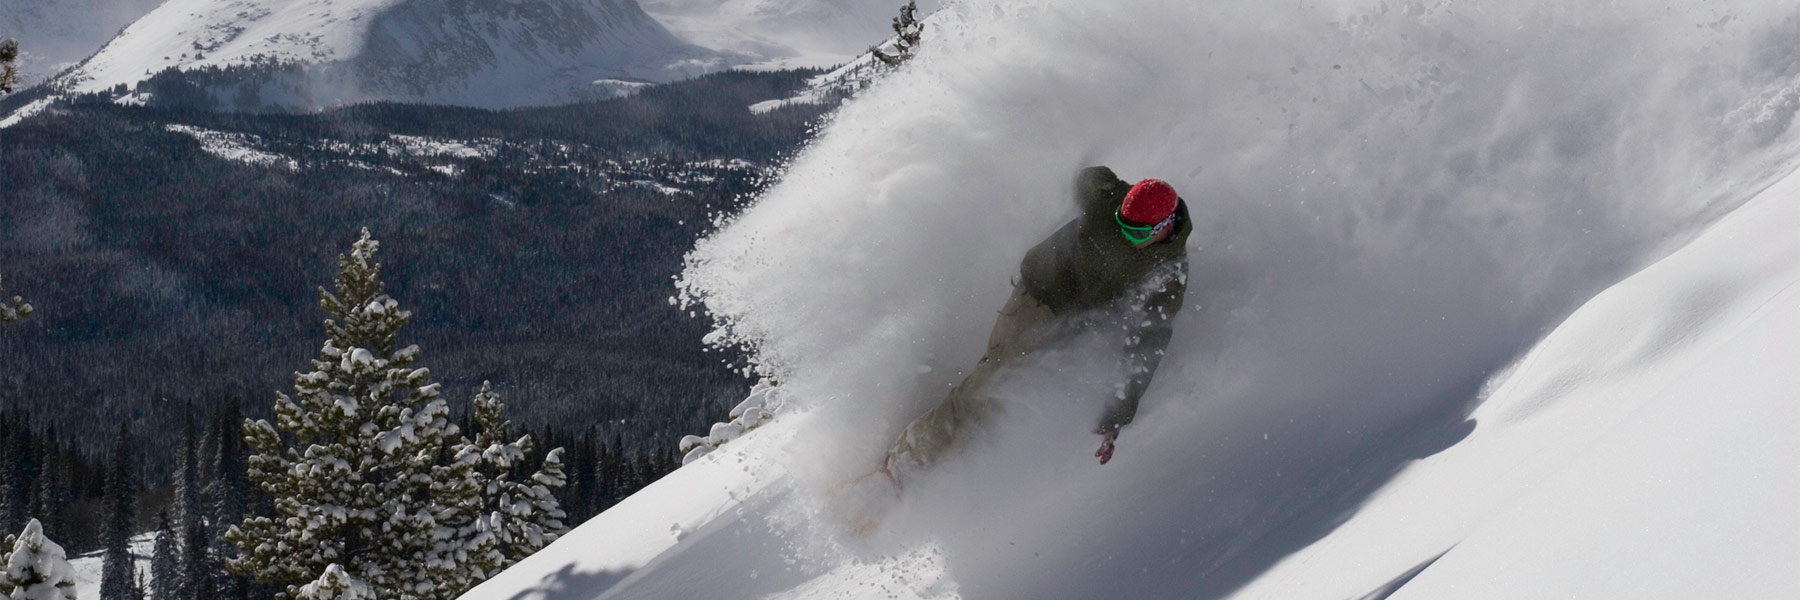 Breckenridge, CO Ski Vacation: Save 15 - 25% on ResortQuest Breckenridge Properties!